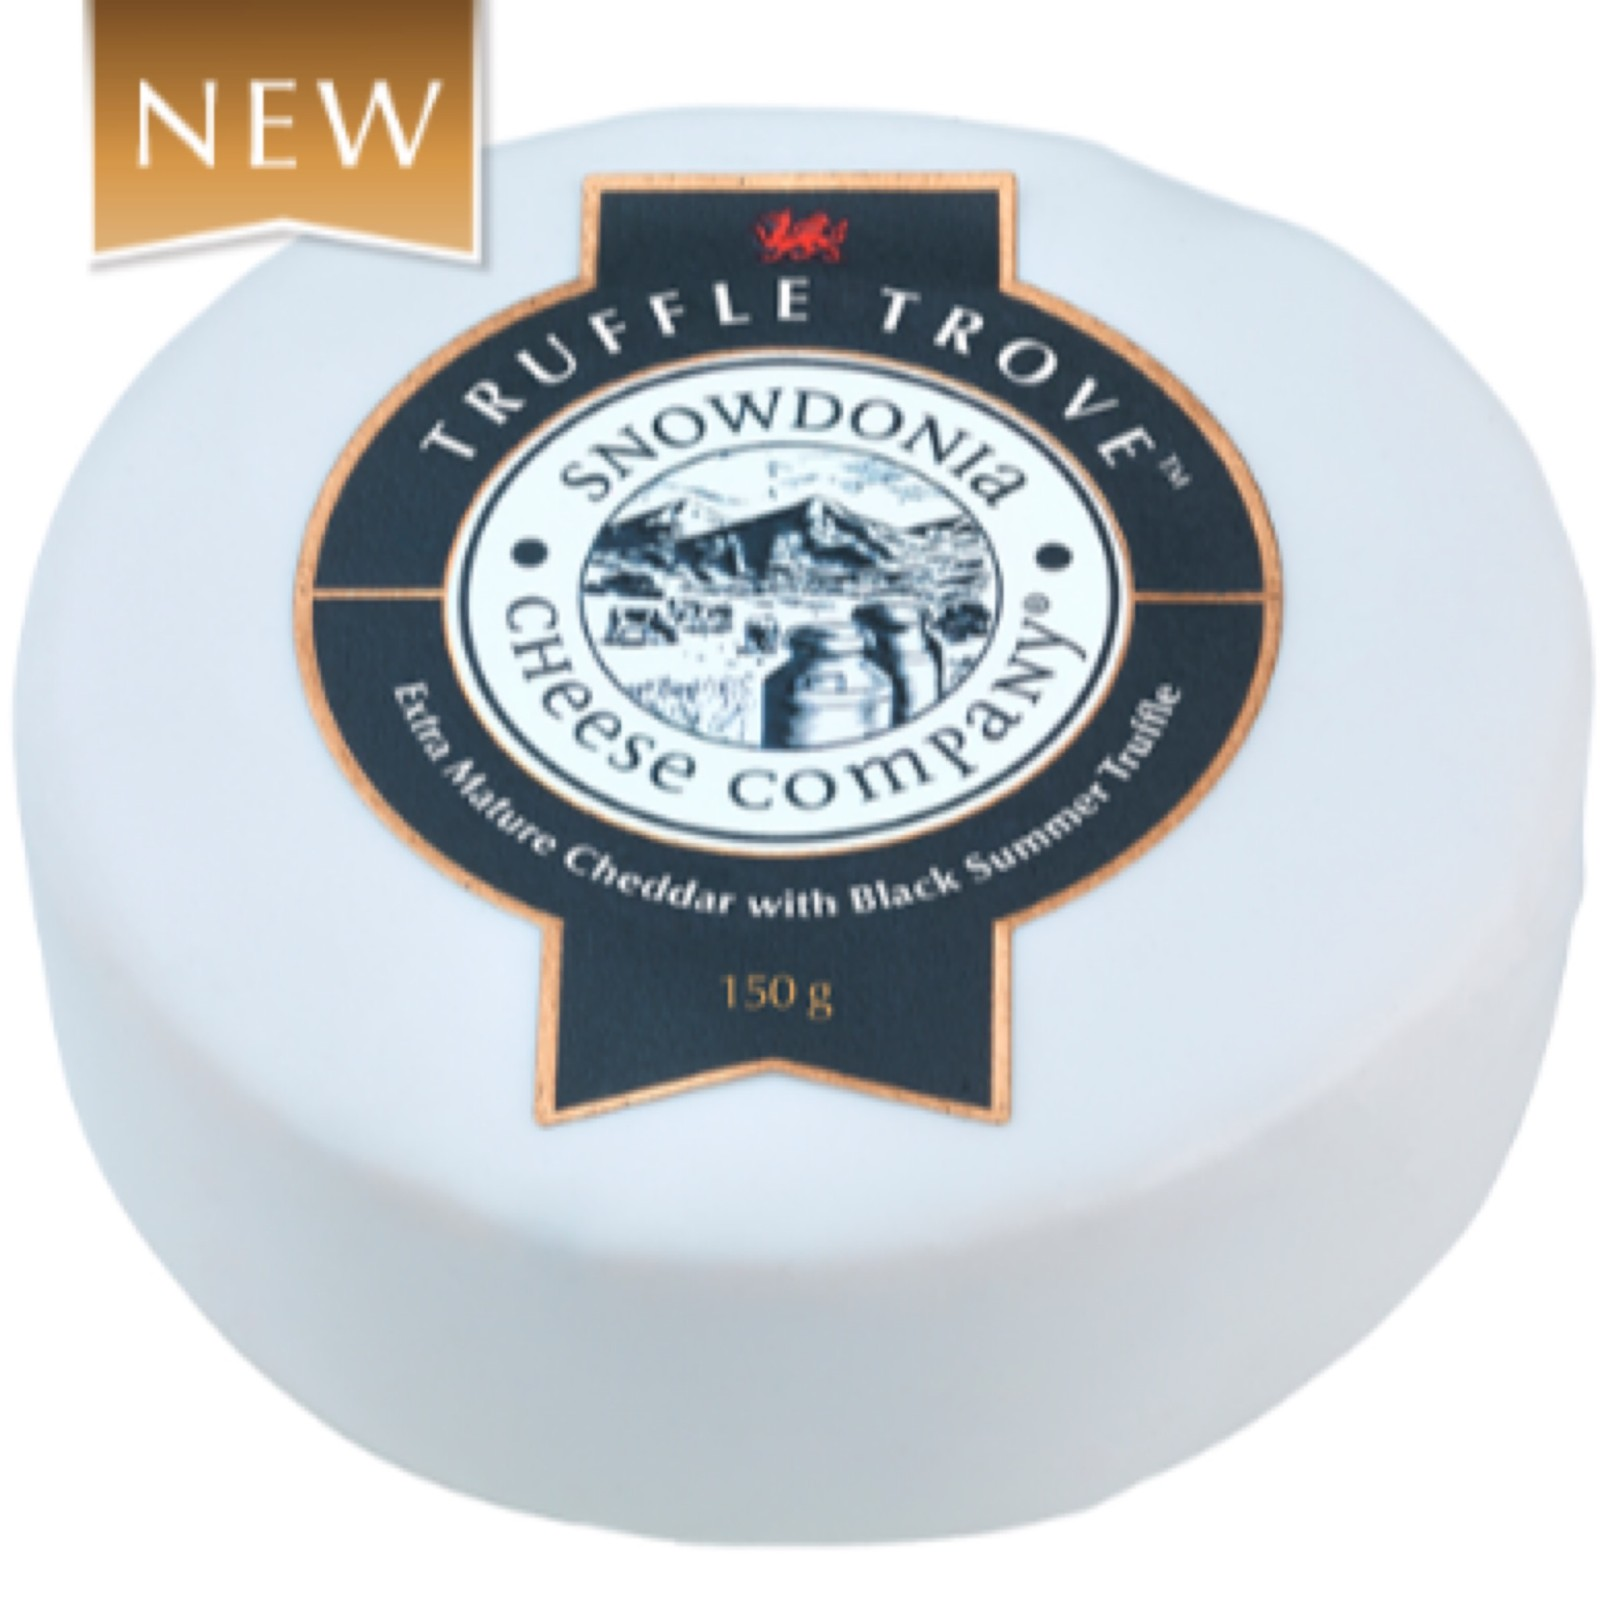 Truffle Trove 150g Extra Mature Cheddar with Black Summer Truffle Snowdonia